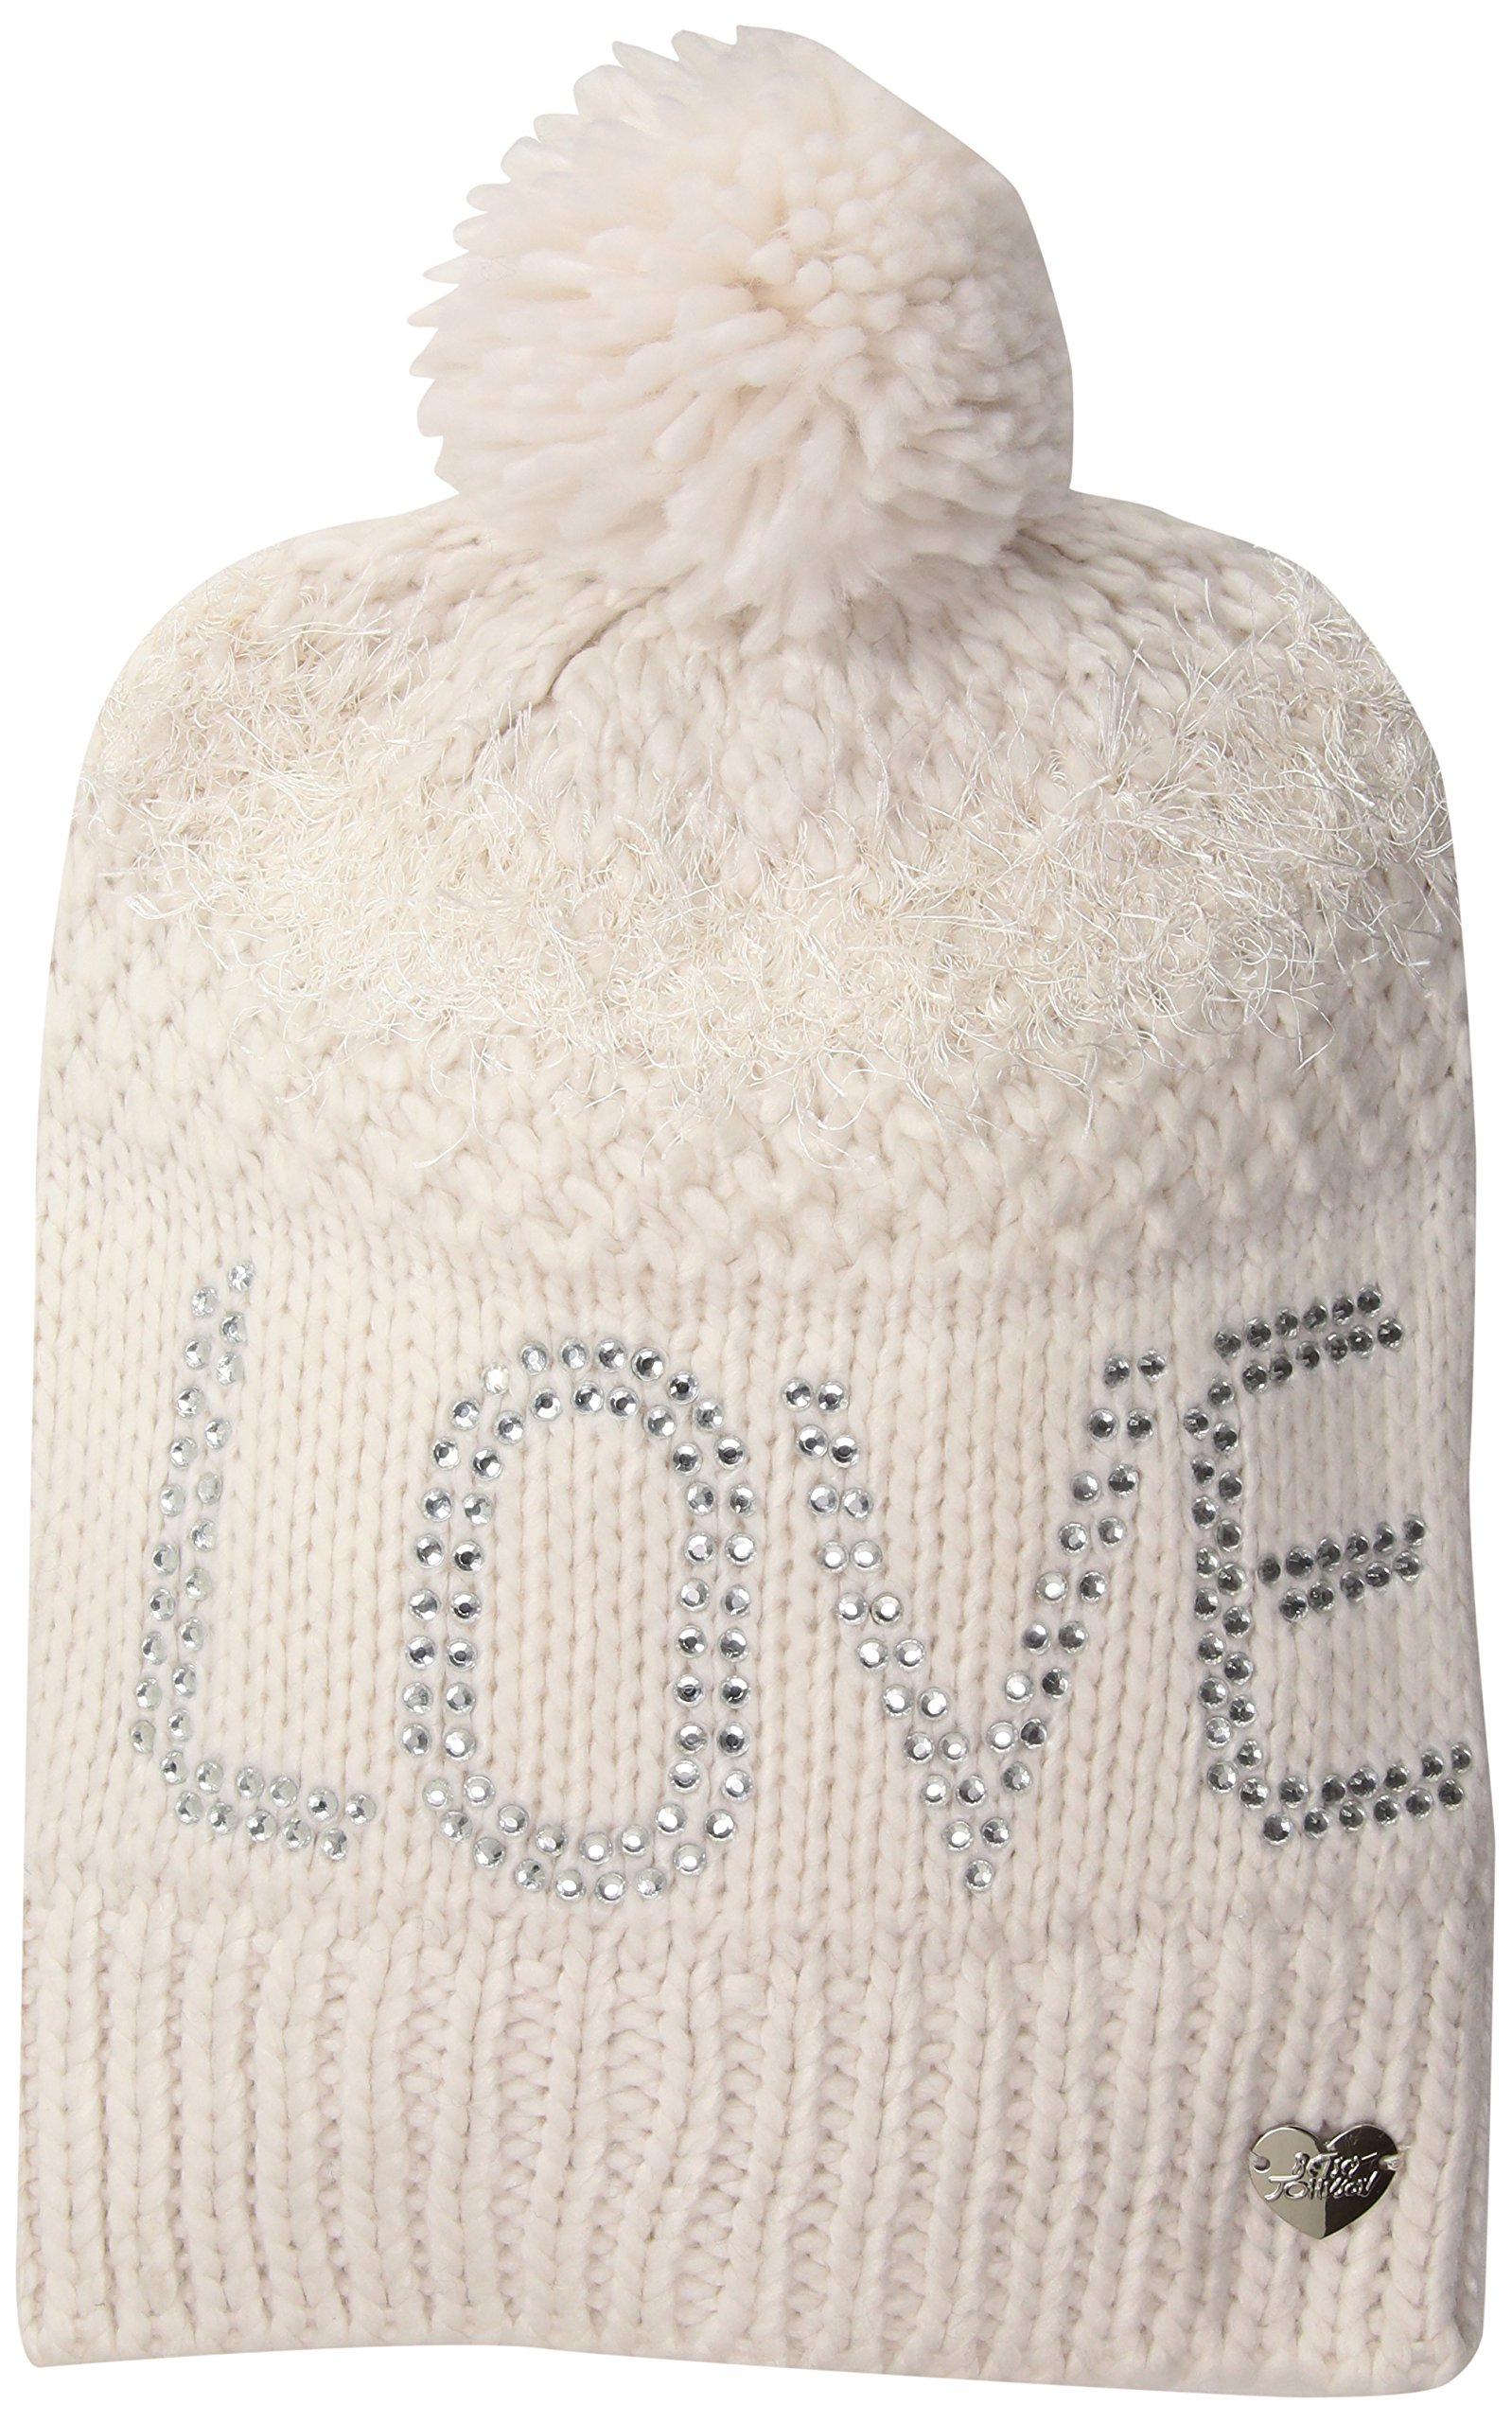 Betsey Johnson Women's Love Beanie, Ivory, One Size